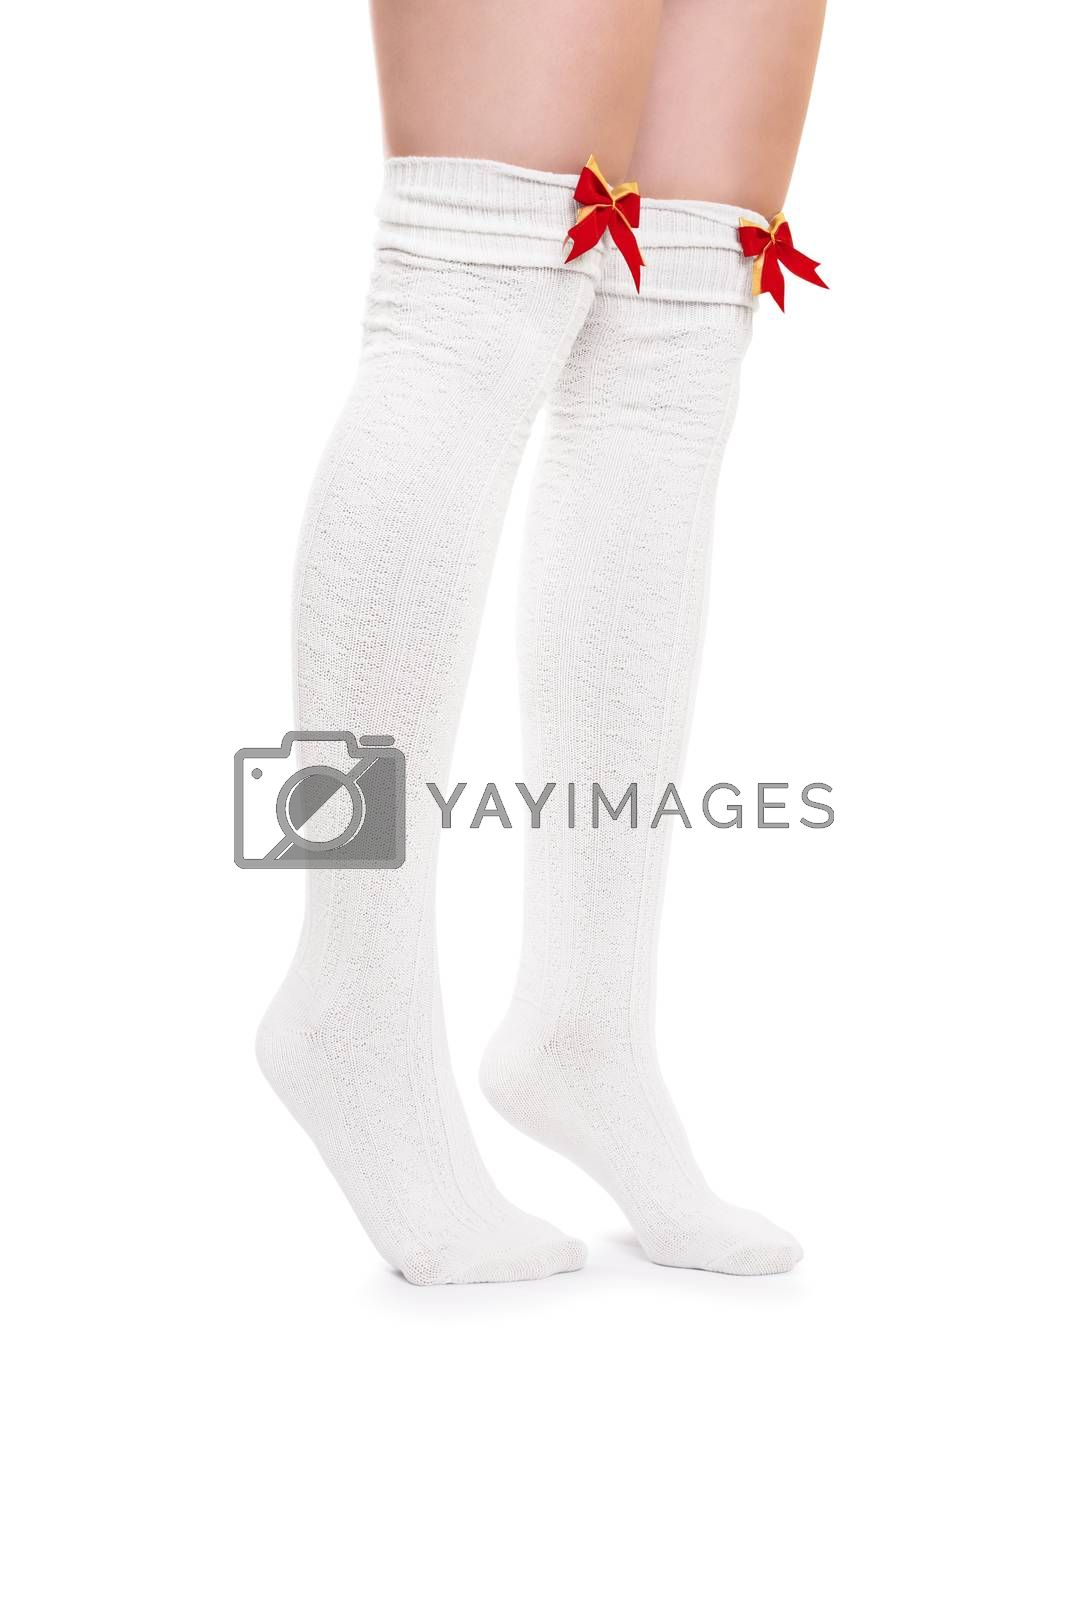 Sexy female legs in white stockings with red bow ties tiptoeing, isolated on white background.